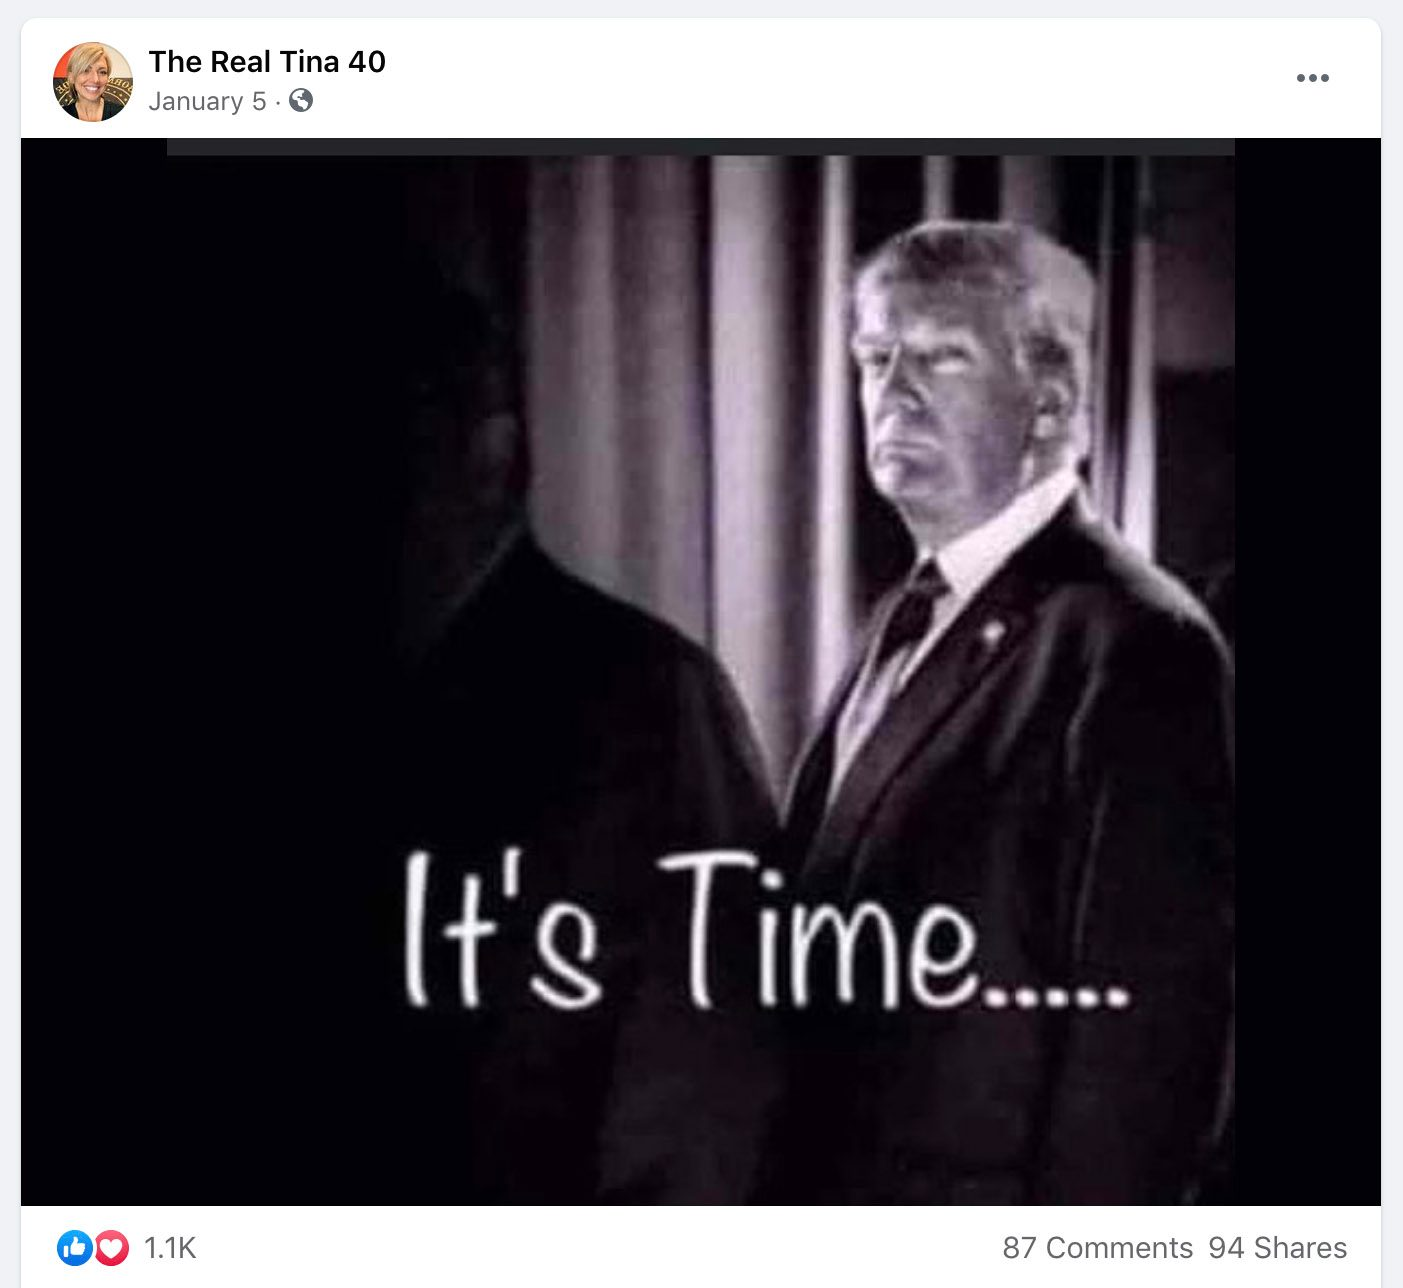 Tina Forte was at the Capitol riot on January 6 and also has posted QAnon content and debunked election conspiracy theories.